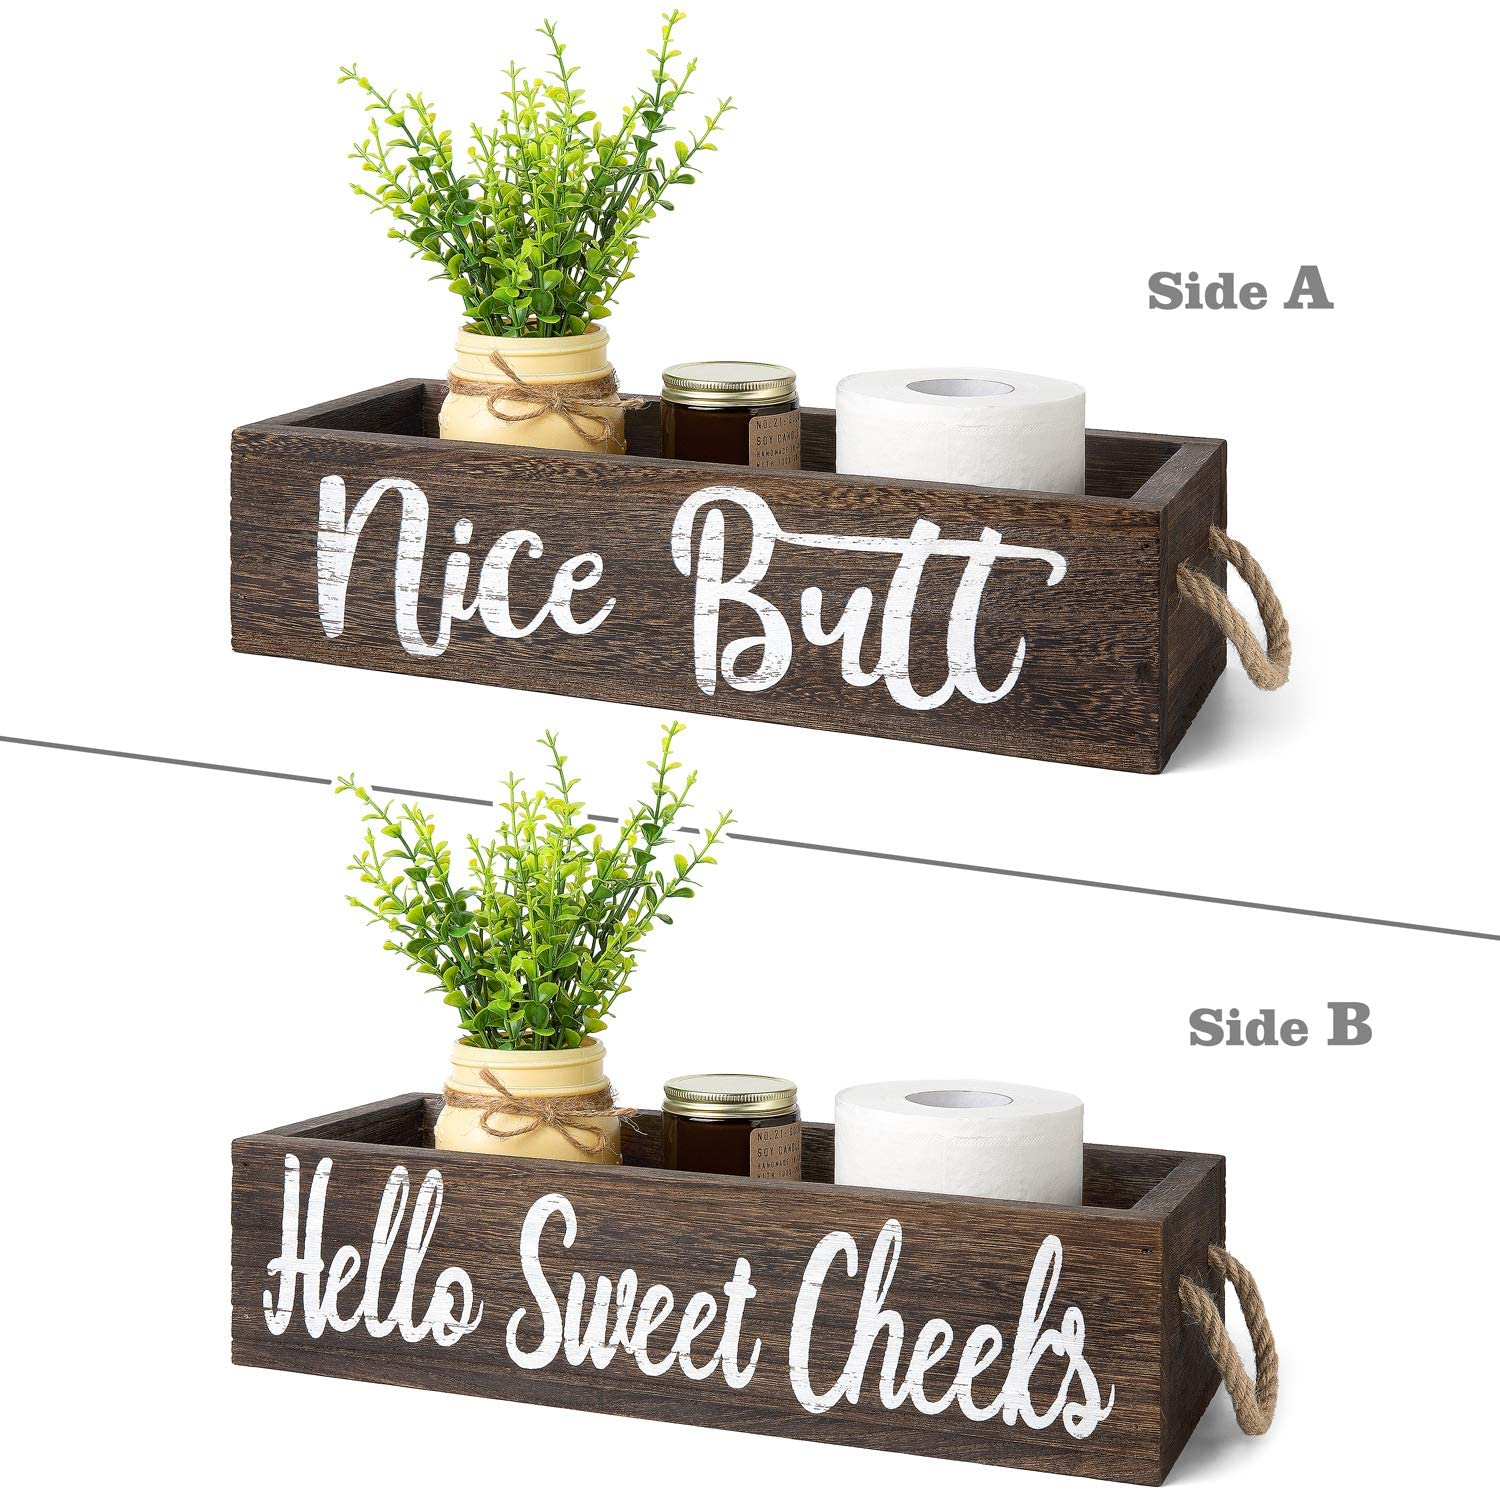 Dahey 1 Pack Farmhouse Nice Butt Bathroom Decor Box 2 Sides Toilet Paper Holder Wood Tank with Funny Sign Rustic Home Decor for Kitchen Table Countertop (Major Jar and Artificial Flower Included)